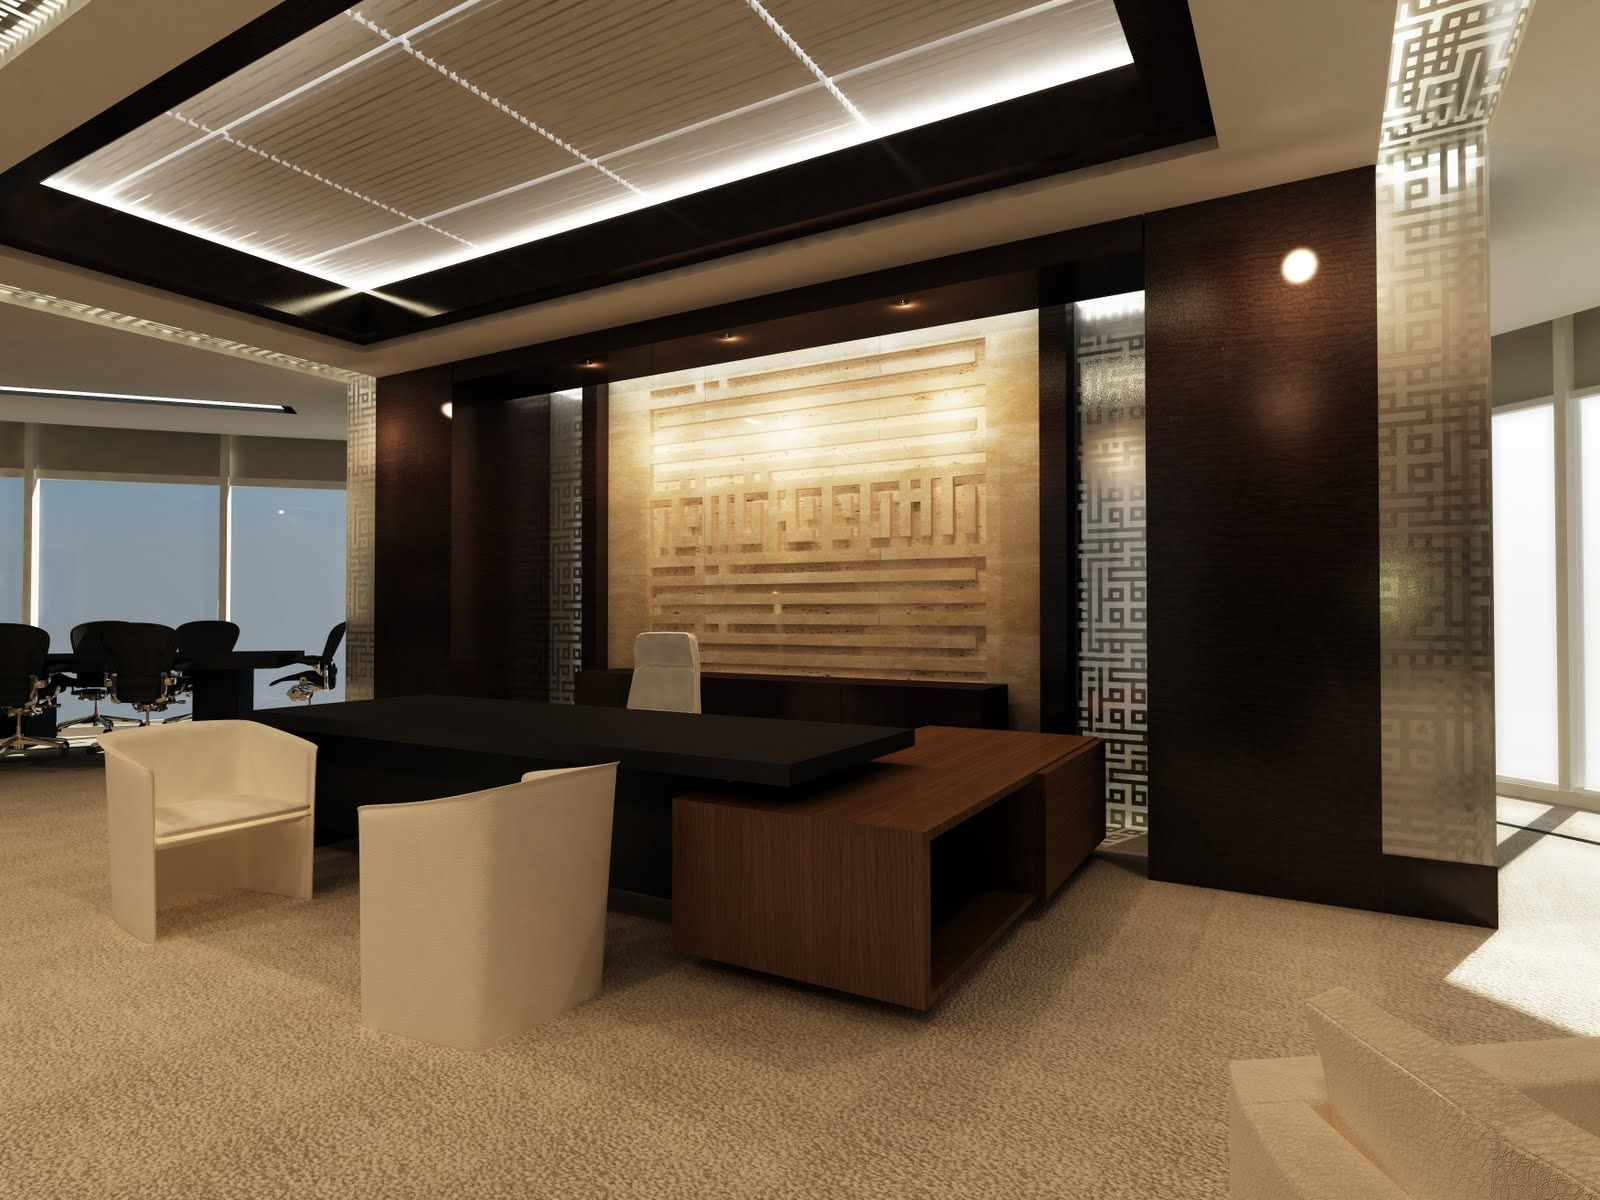 Executive Office Design Ideas images about interior office design on lawyer office interior design ideas Office Interior Design Intended For Office Interior Design Ideas Mrliu